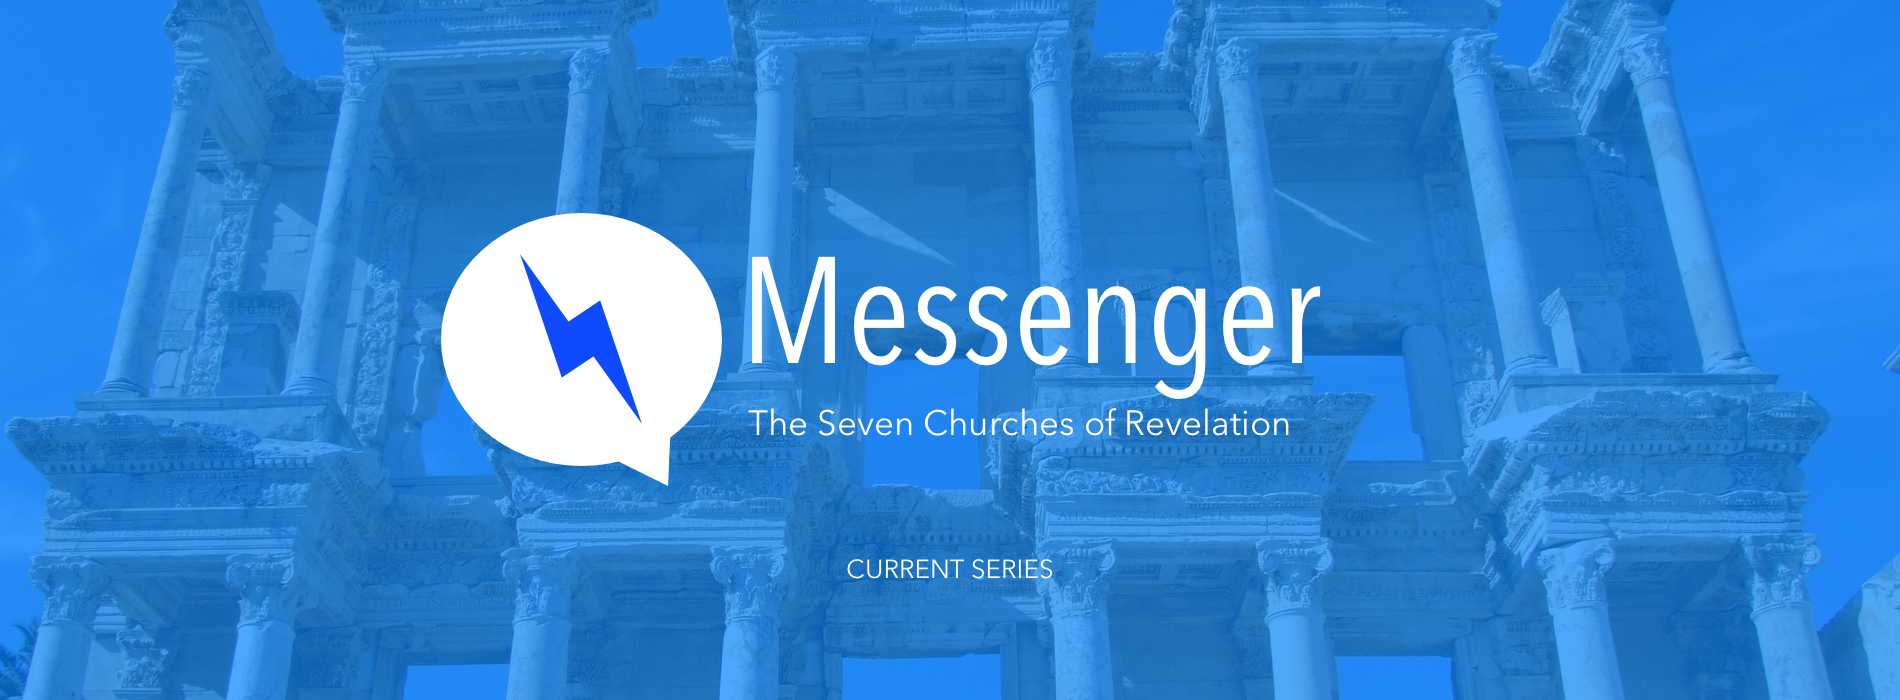 Messenger: Letters to Discovery 3 website.png